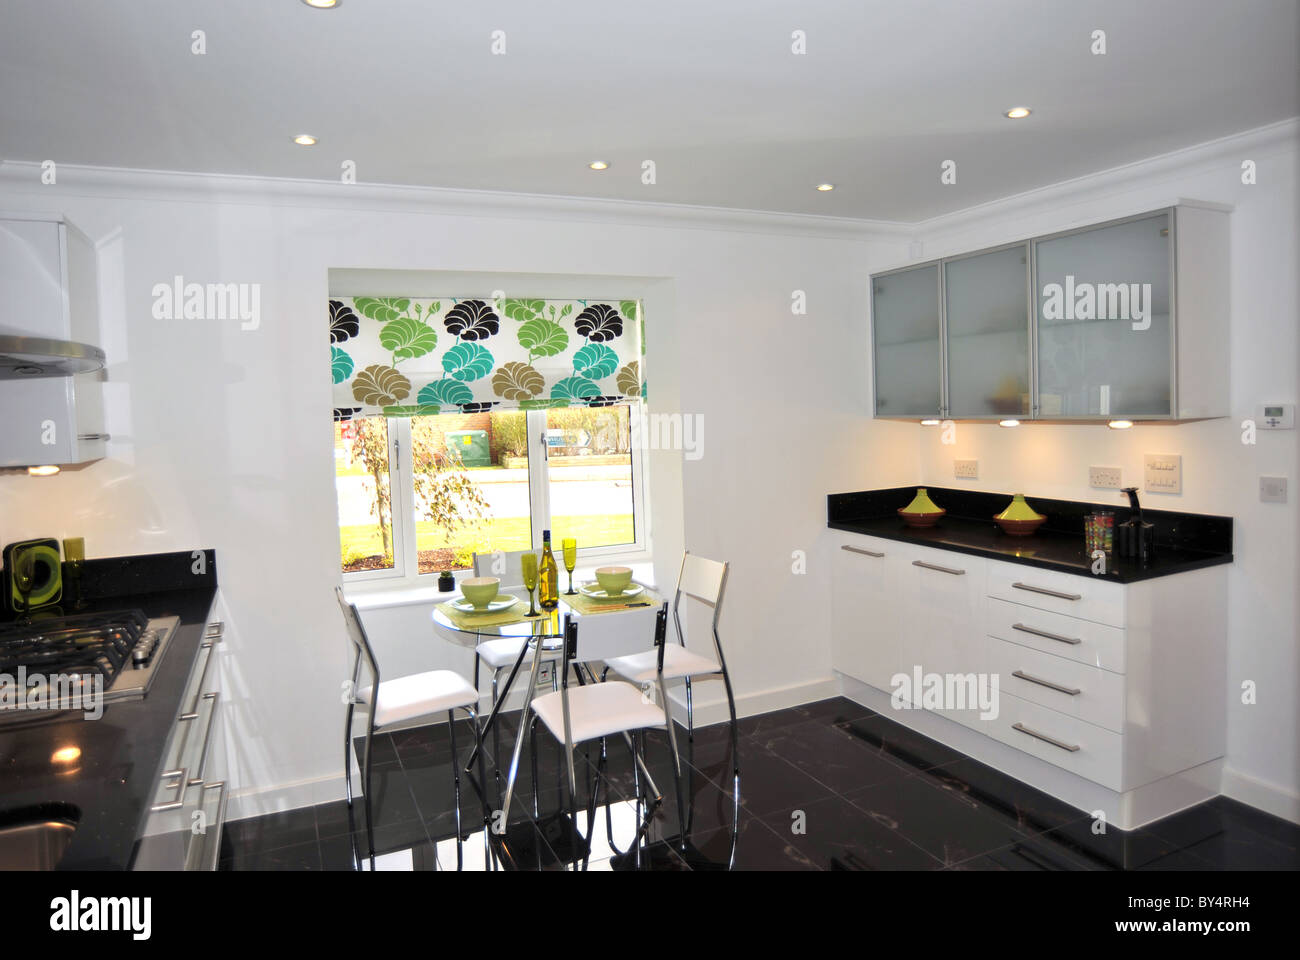 Granite Worktops Stockfotos & Granite Worktops Bilder - Alamy